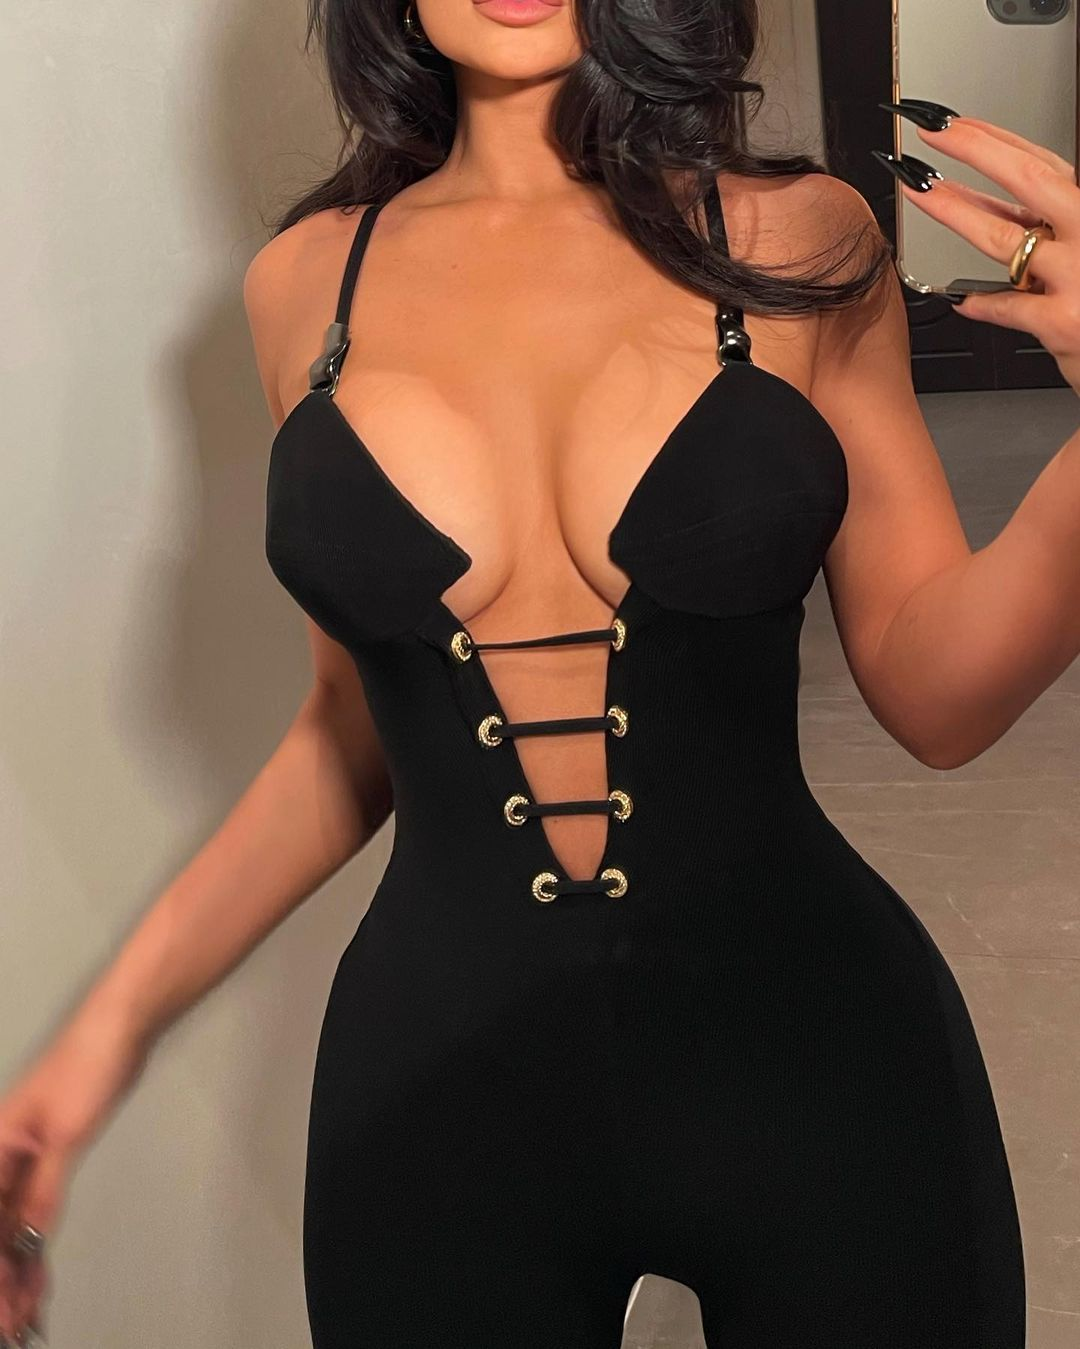 Kylie Jenner donning a figure hugging Versace jumpsuit with a nylon material, spaghetti straps and plunging neckline that almost went down to her waist